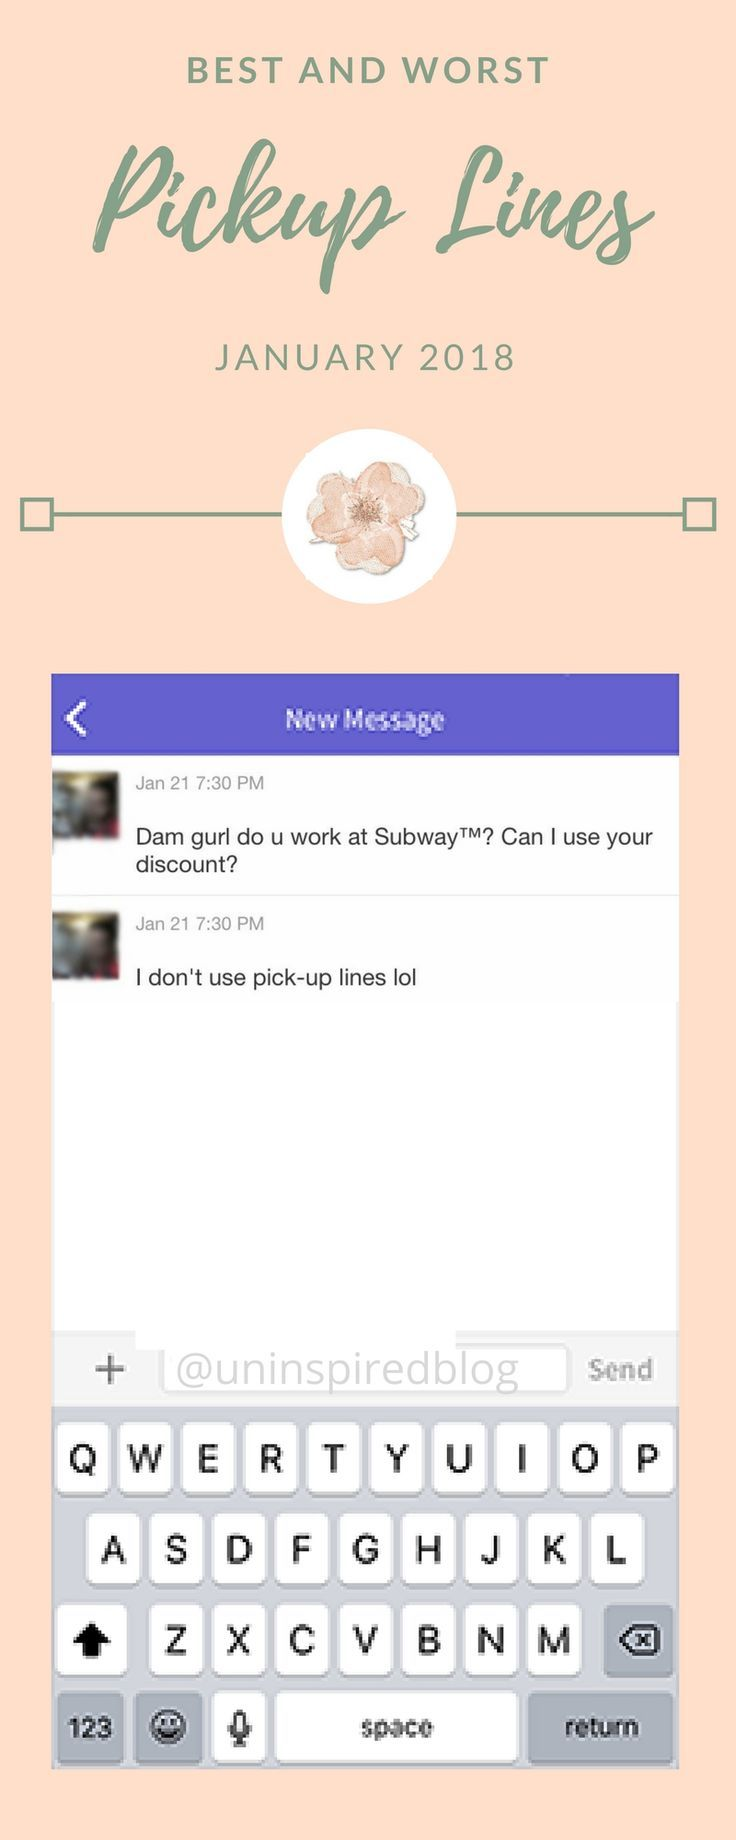 Best opening statements on dating site